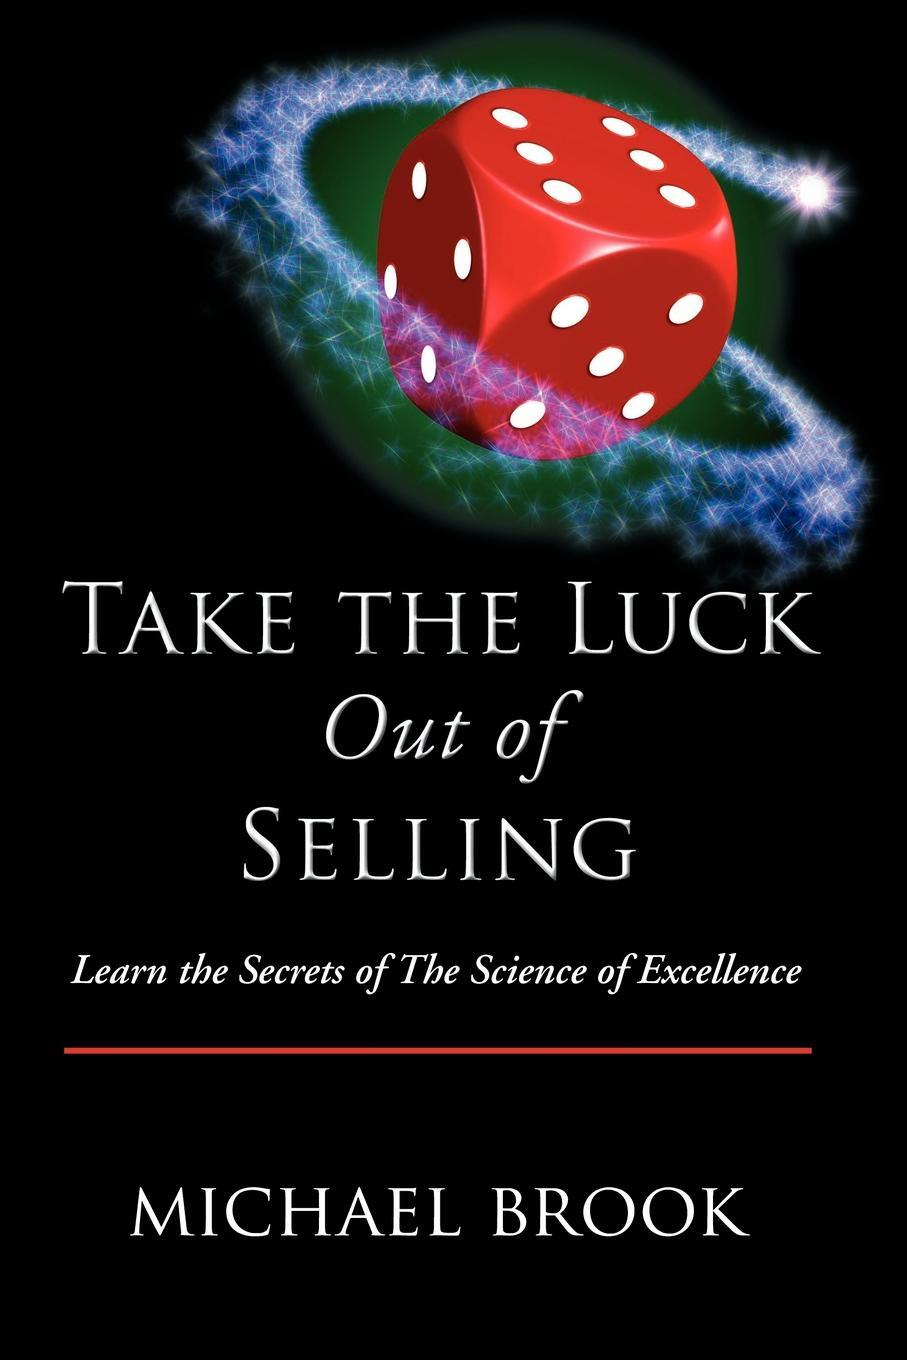 Take the Luck Out of Selling. Learn the Secrets of the Science of Excellence